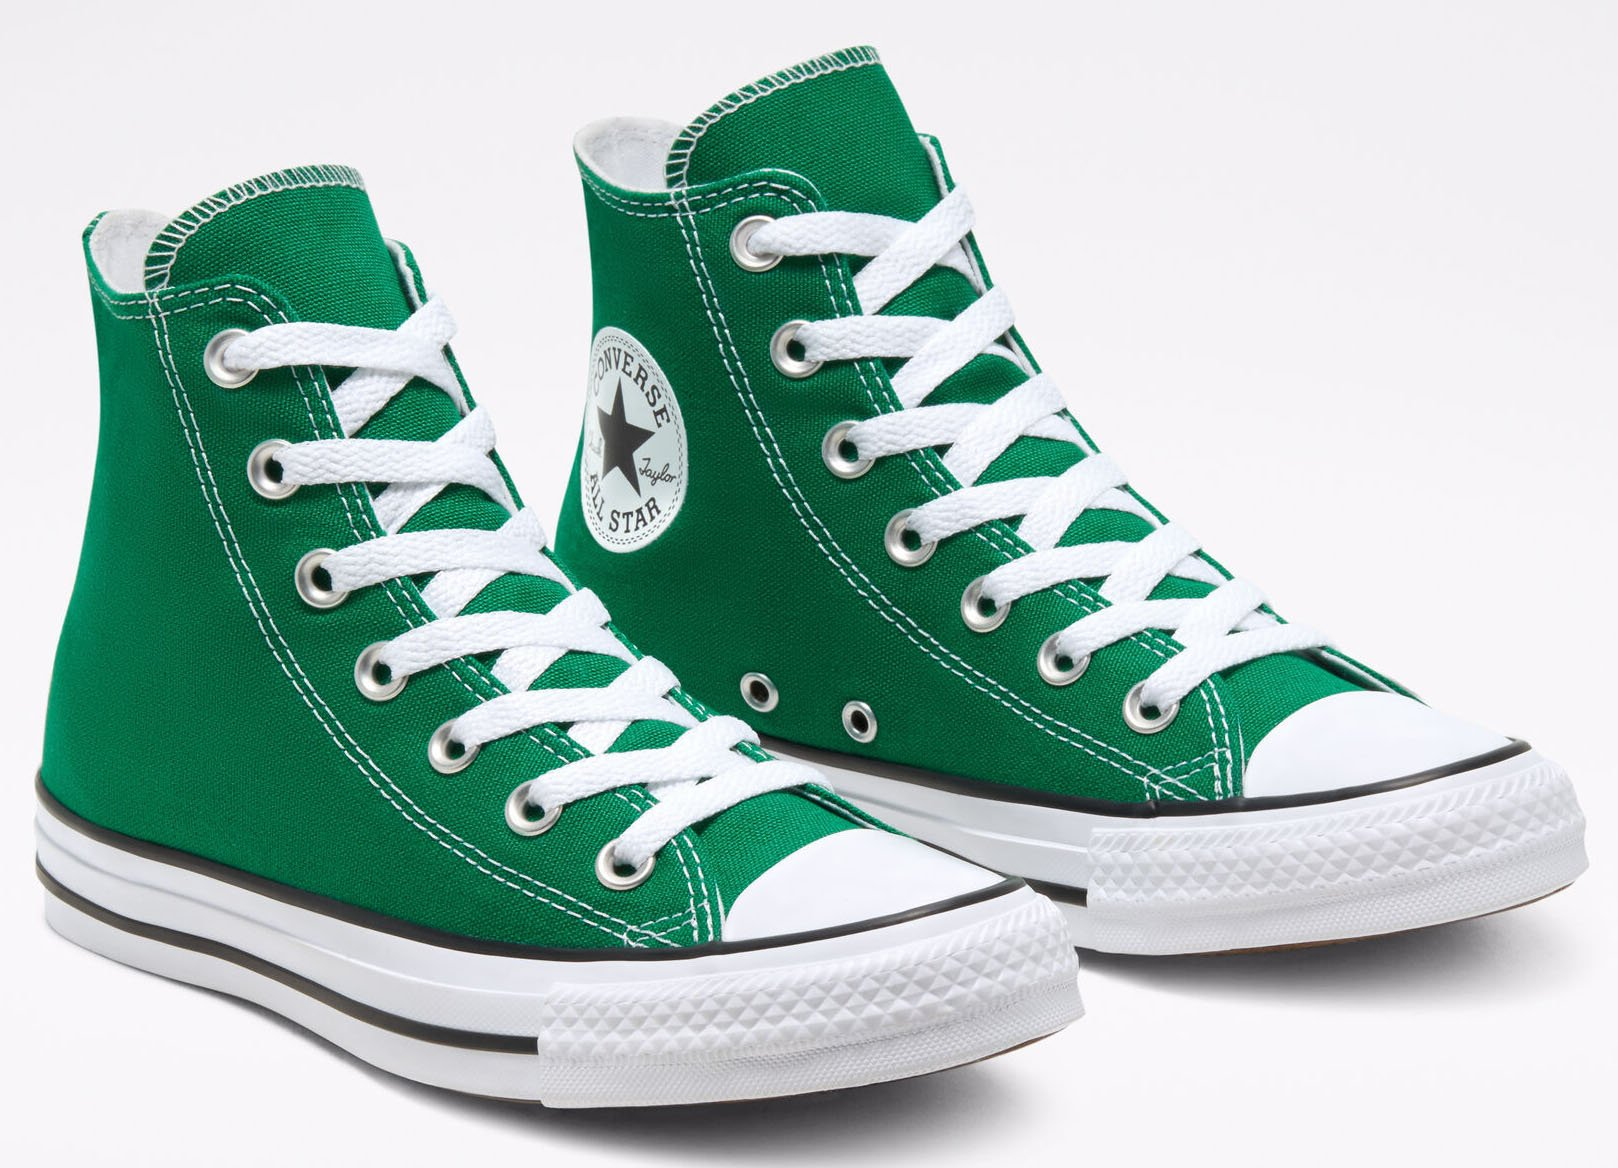 The Converse Colors Chuck Taylors come in fresh Amazon Green colorway and have the iconic Chuck Taylor ankle patch and classic woven tongue label